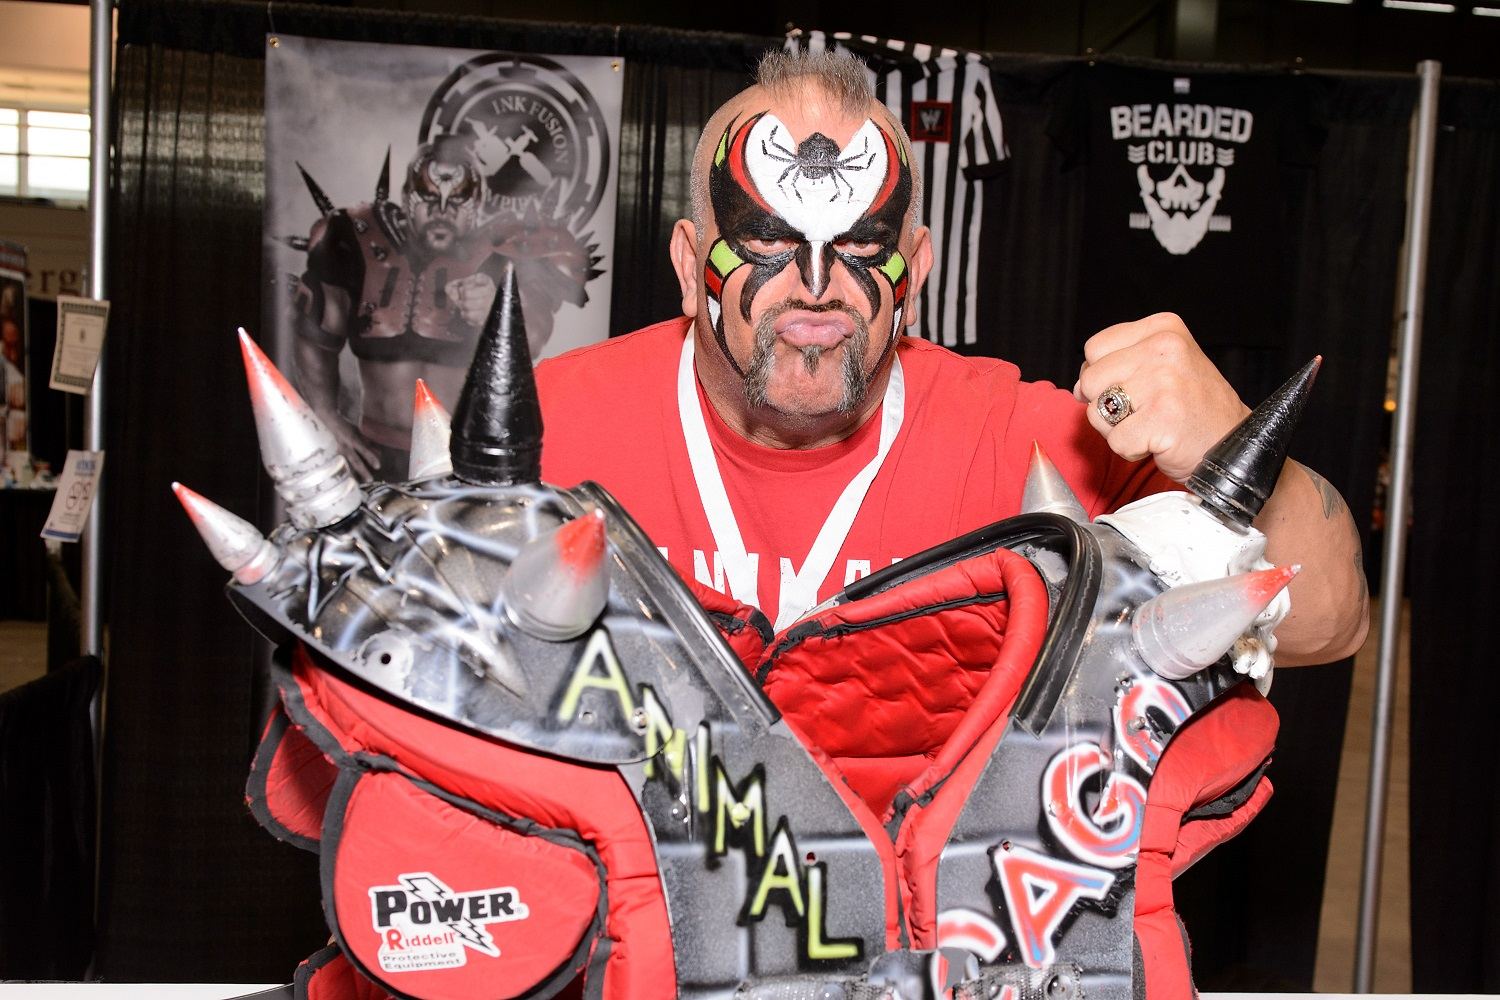 Road Warrior Animal Initially Wasn't Fond of the Gimmick That Helped Him Become a Pro Wrestling Icon